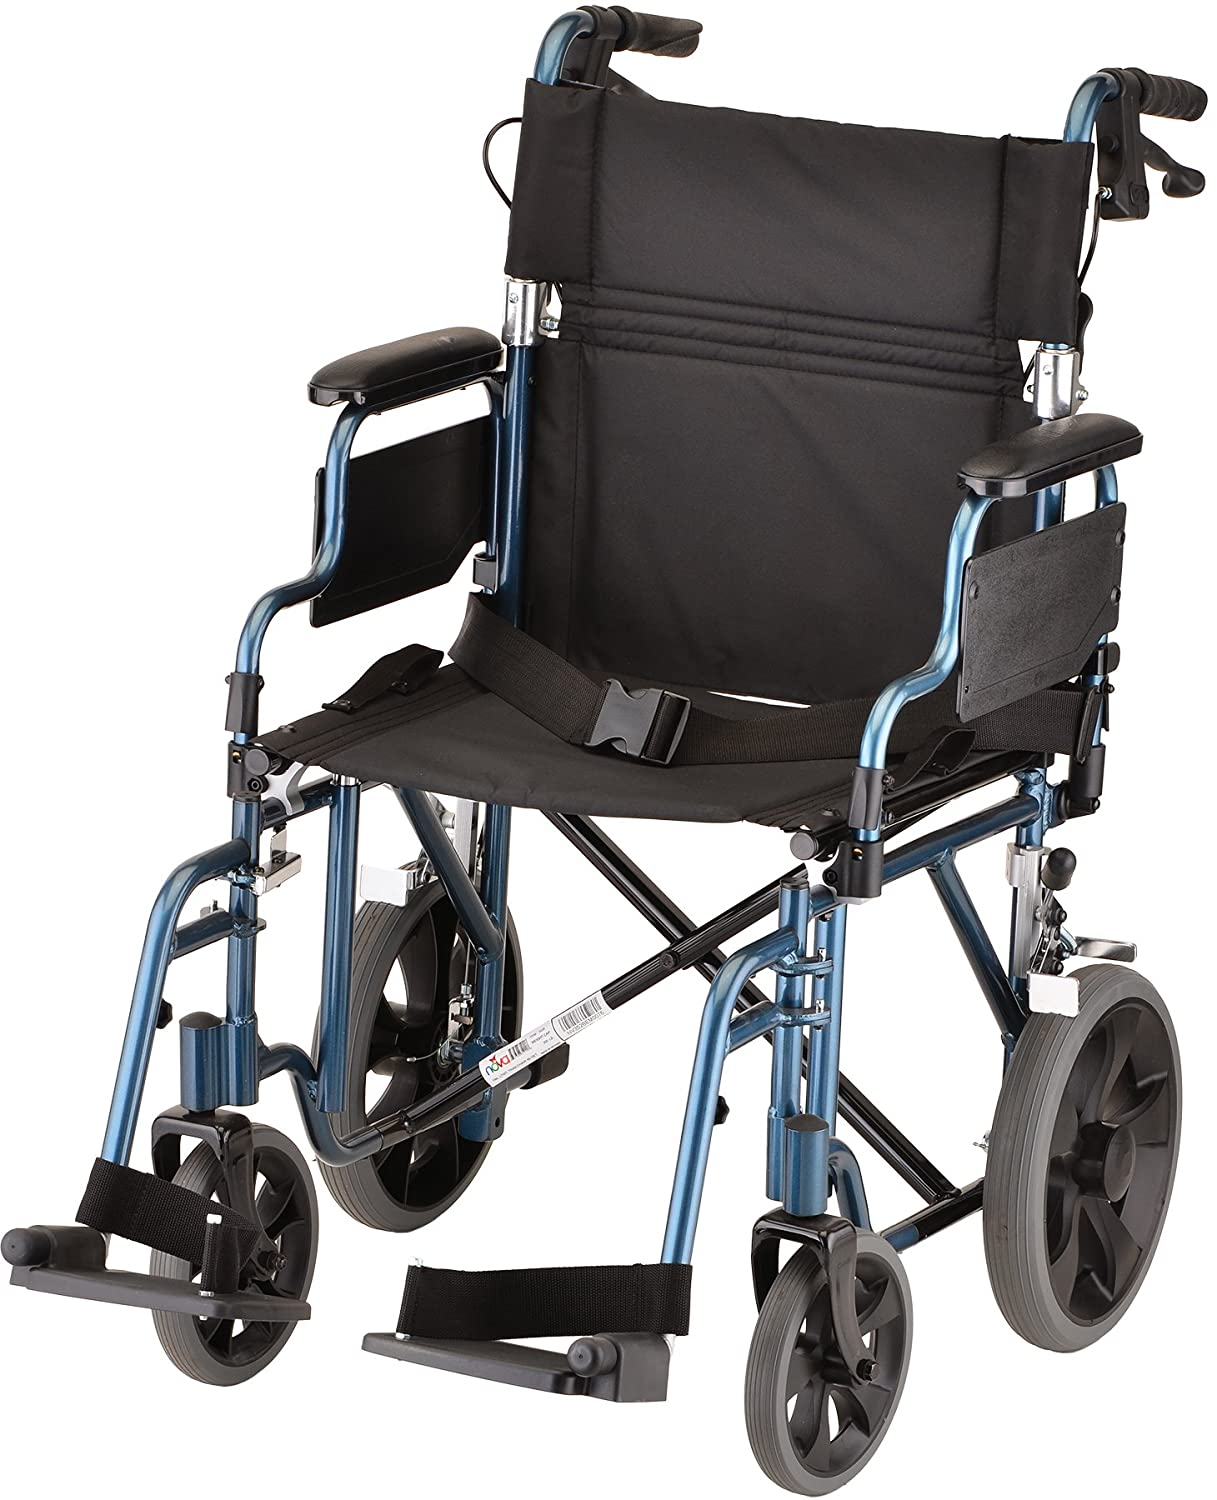 Astounding Nova Lightweight Transport Chair With Locking Hand Brakes 12 Rear Wheels Removable Flip Up Arms For Easy Transfer Anti Tippers Included Blue Bralicious Painted Fabric Chair Ideas Braliciousco